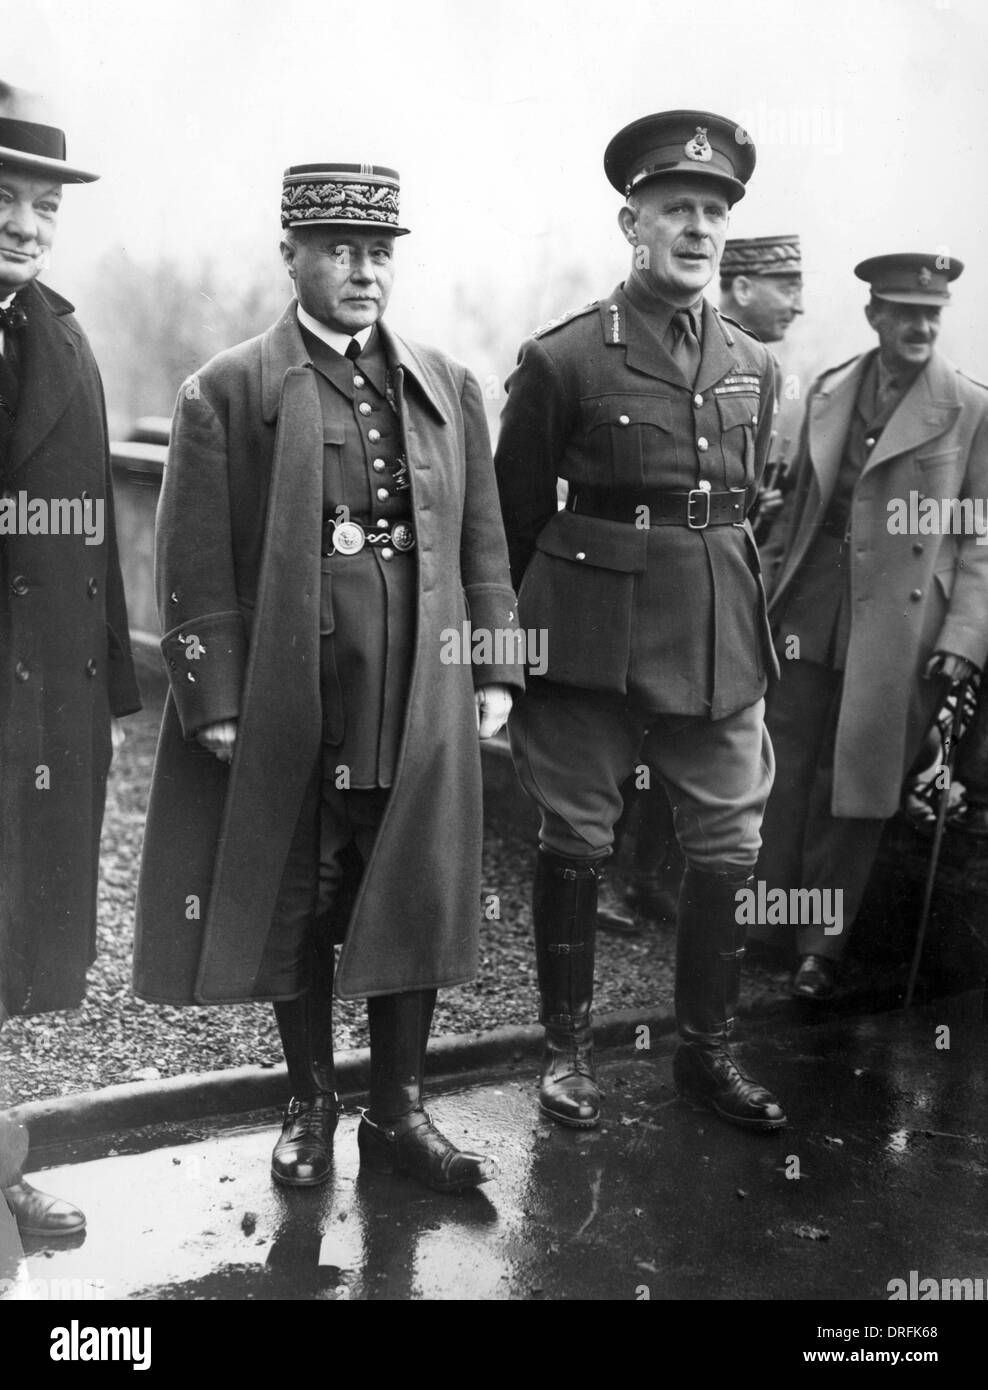 Churchill, General Gamelin and General Gort, WW2 - Stock Image